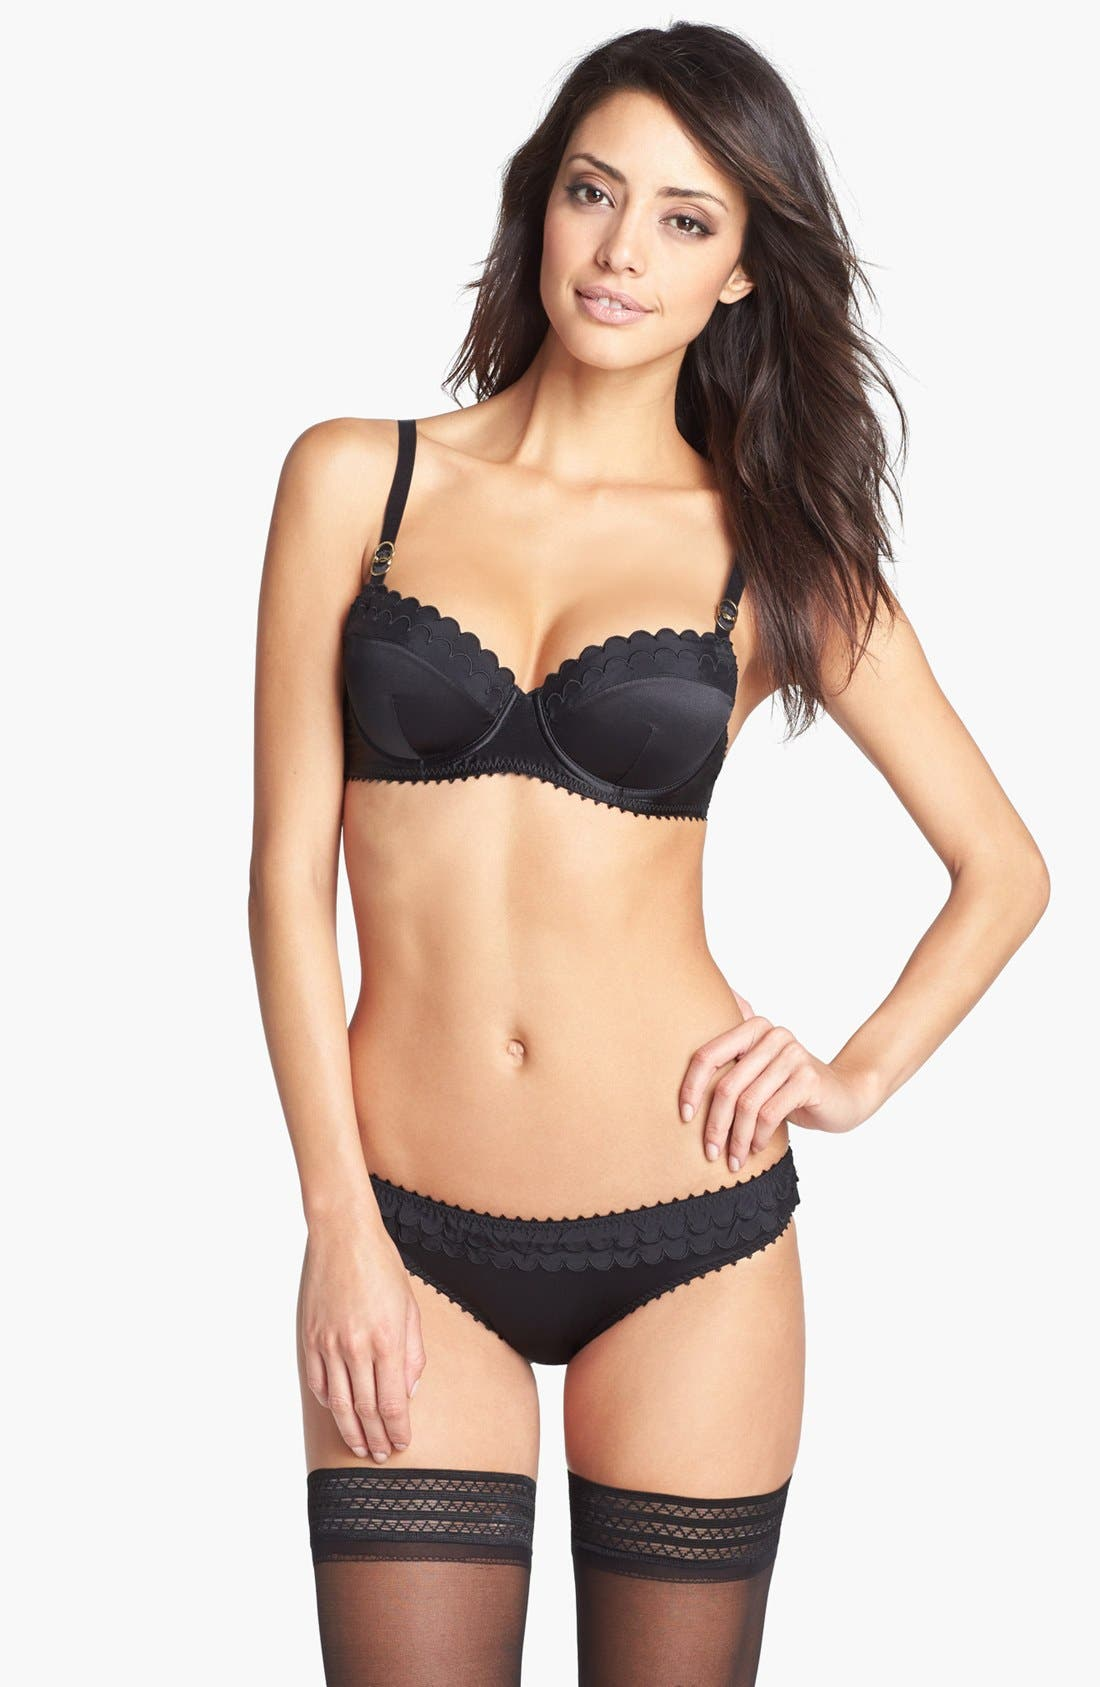 Alternate Image 3  - Stella McCartney 'Becky Smiling' Underwire Balconette Bra